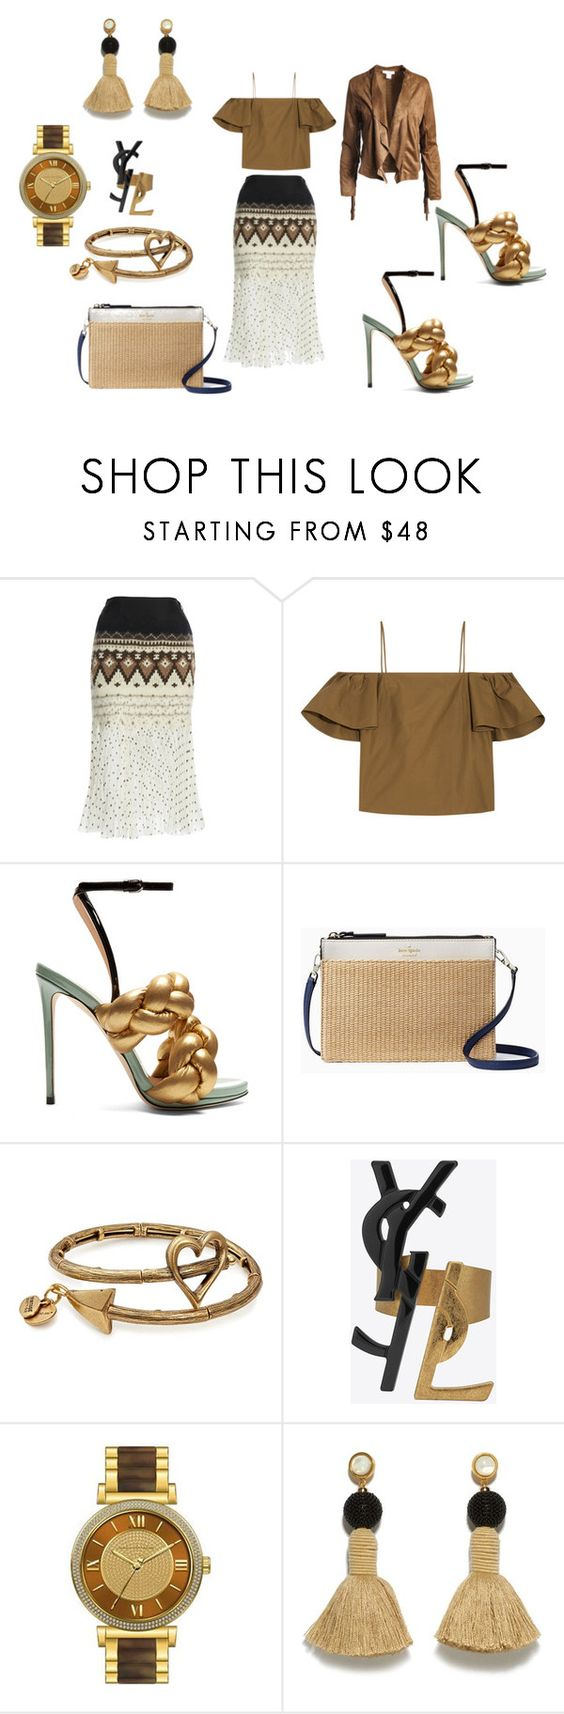 """""""Untitled #1905"""" by deirdre35 on Polyvore featuring Loewe, Fendi, Marco de Vincenzo, Kate Spade, Alex and Ani, Yves Saint Laurent, Michael Kors, Lizzie Fortunato and Sans Souci"""